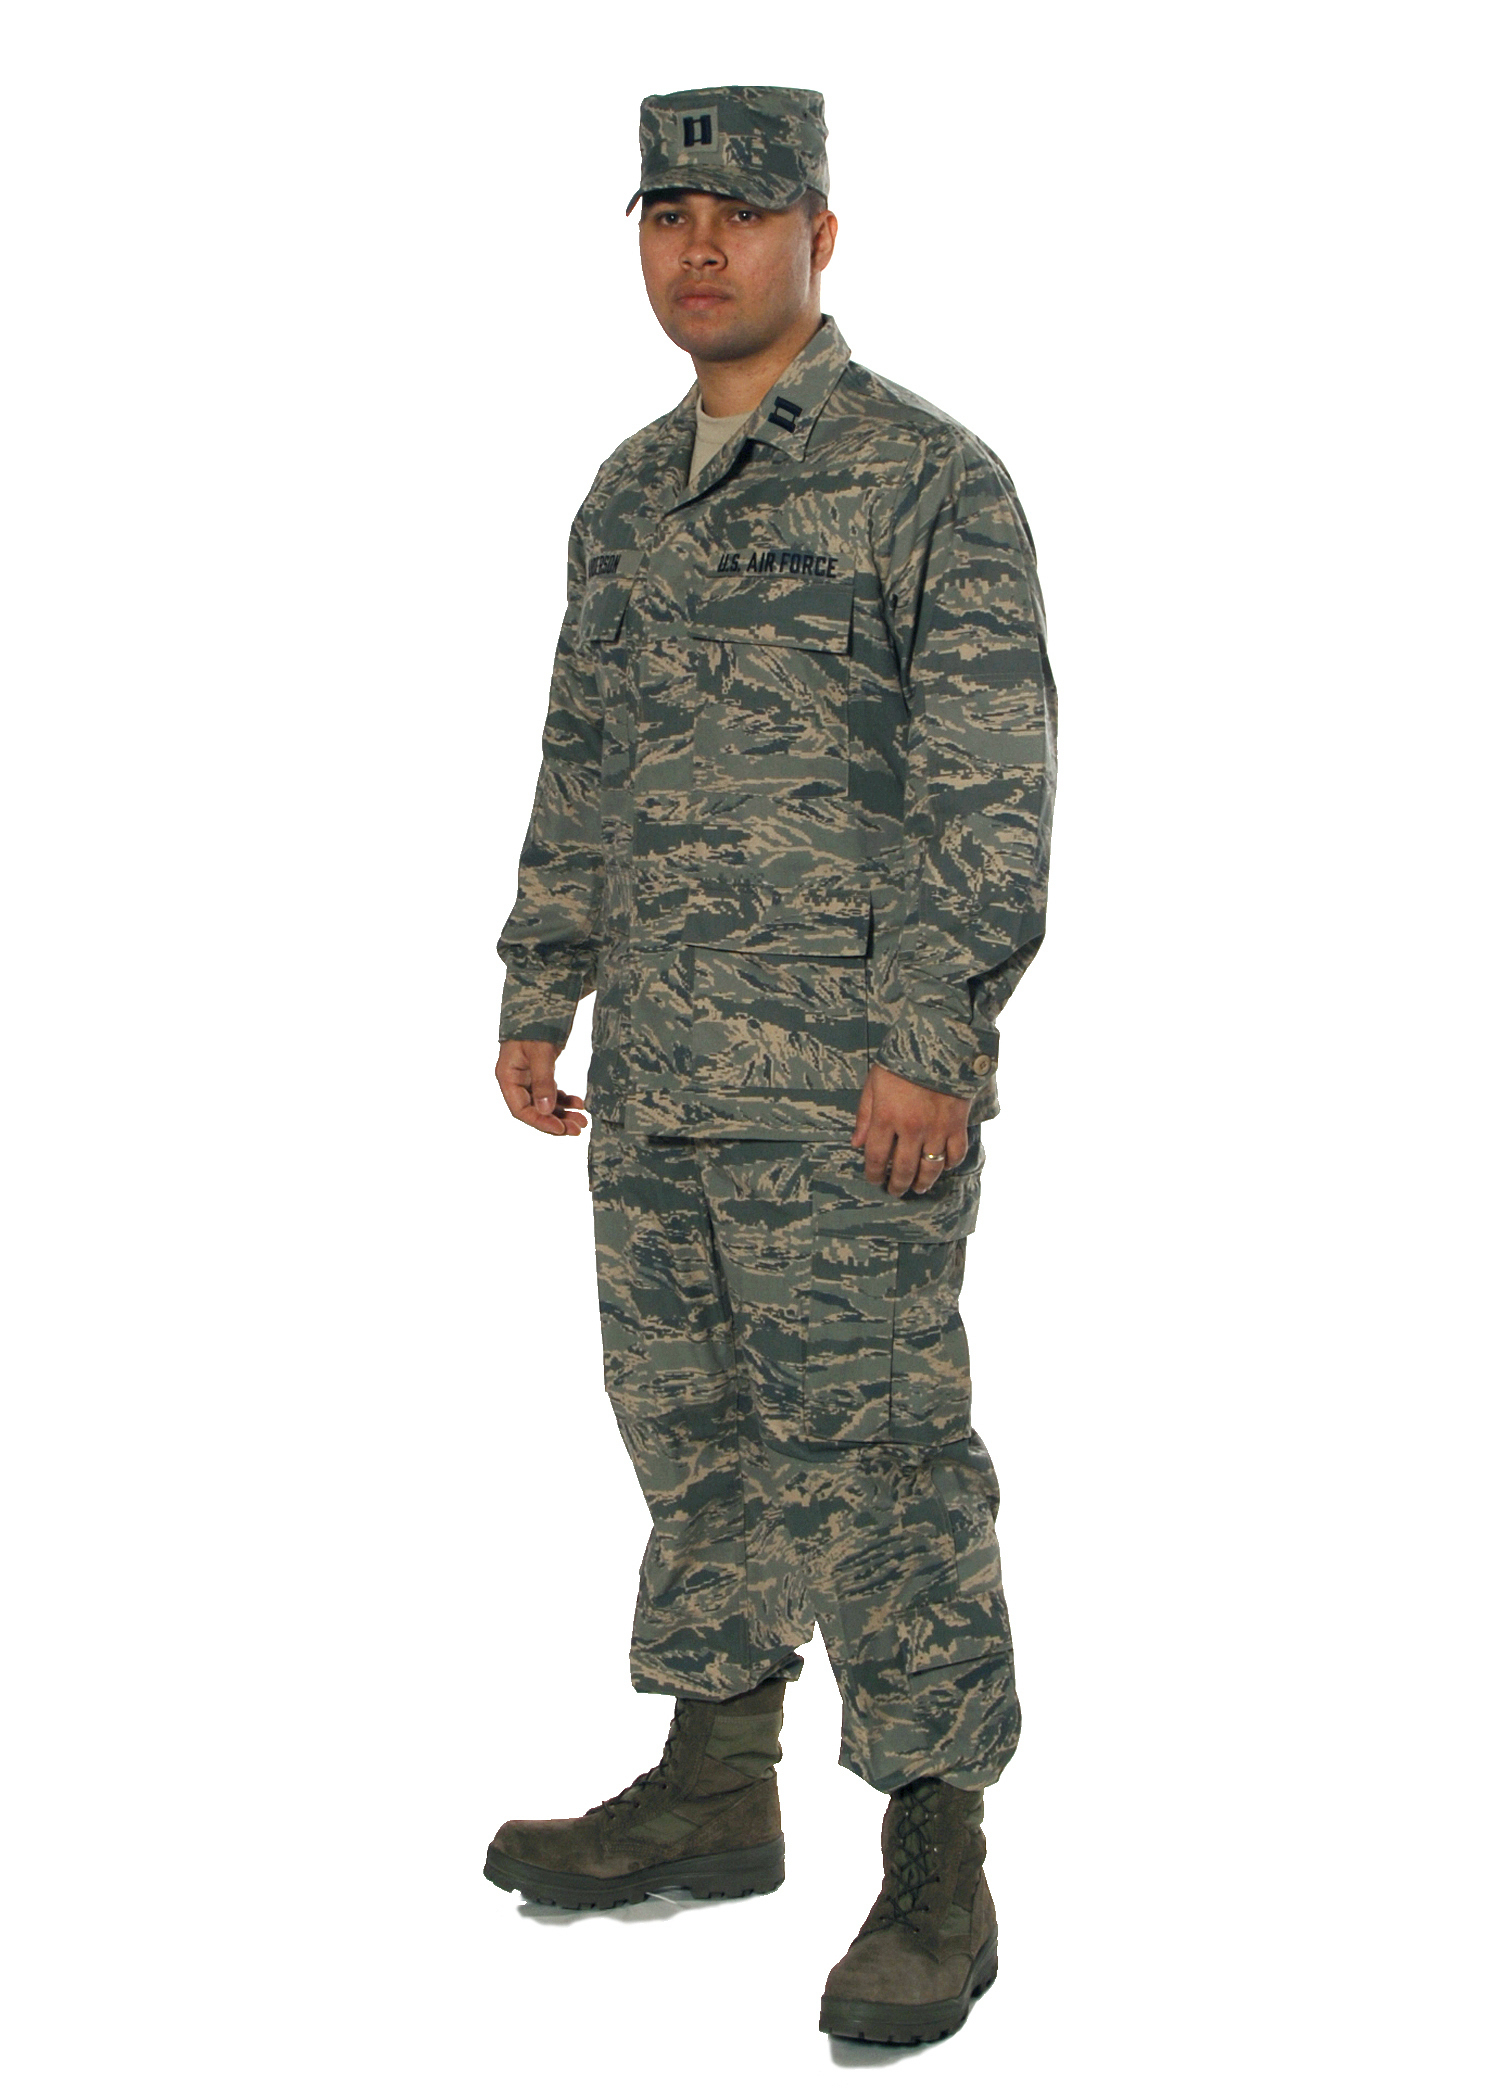 Description USAF Airman Battle Uniform.jpg